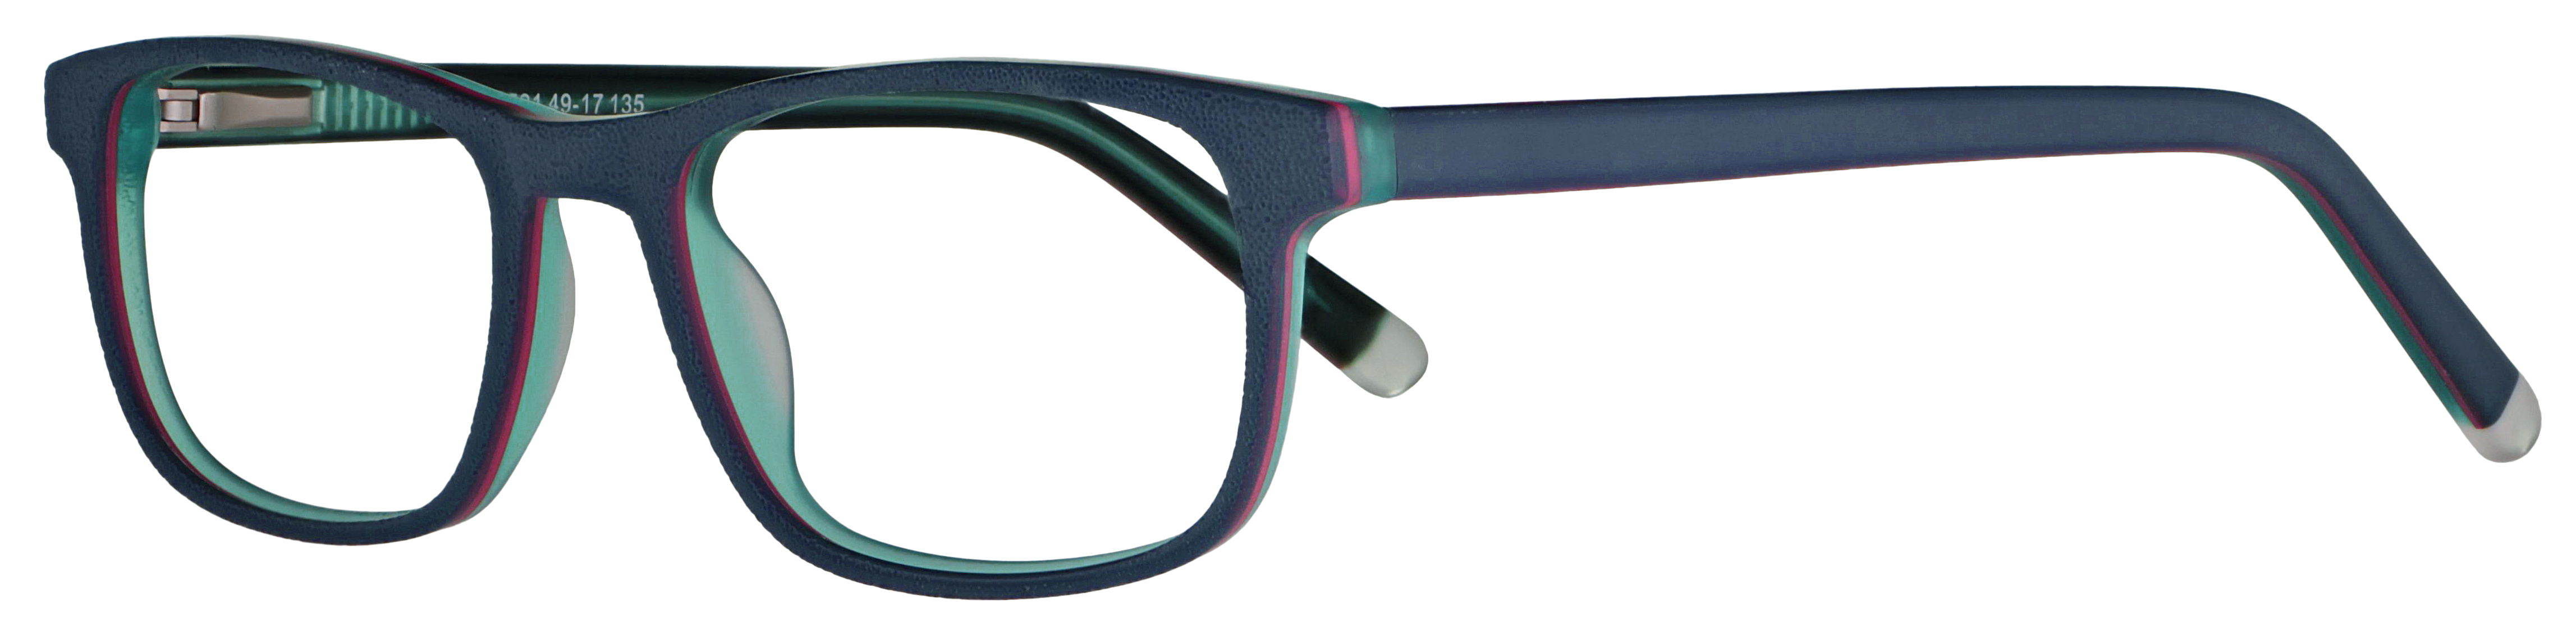 abele optik Kinderbrille 140591